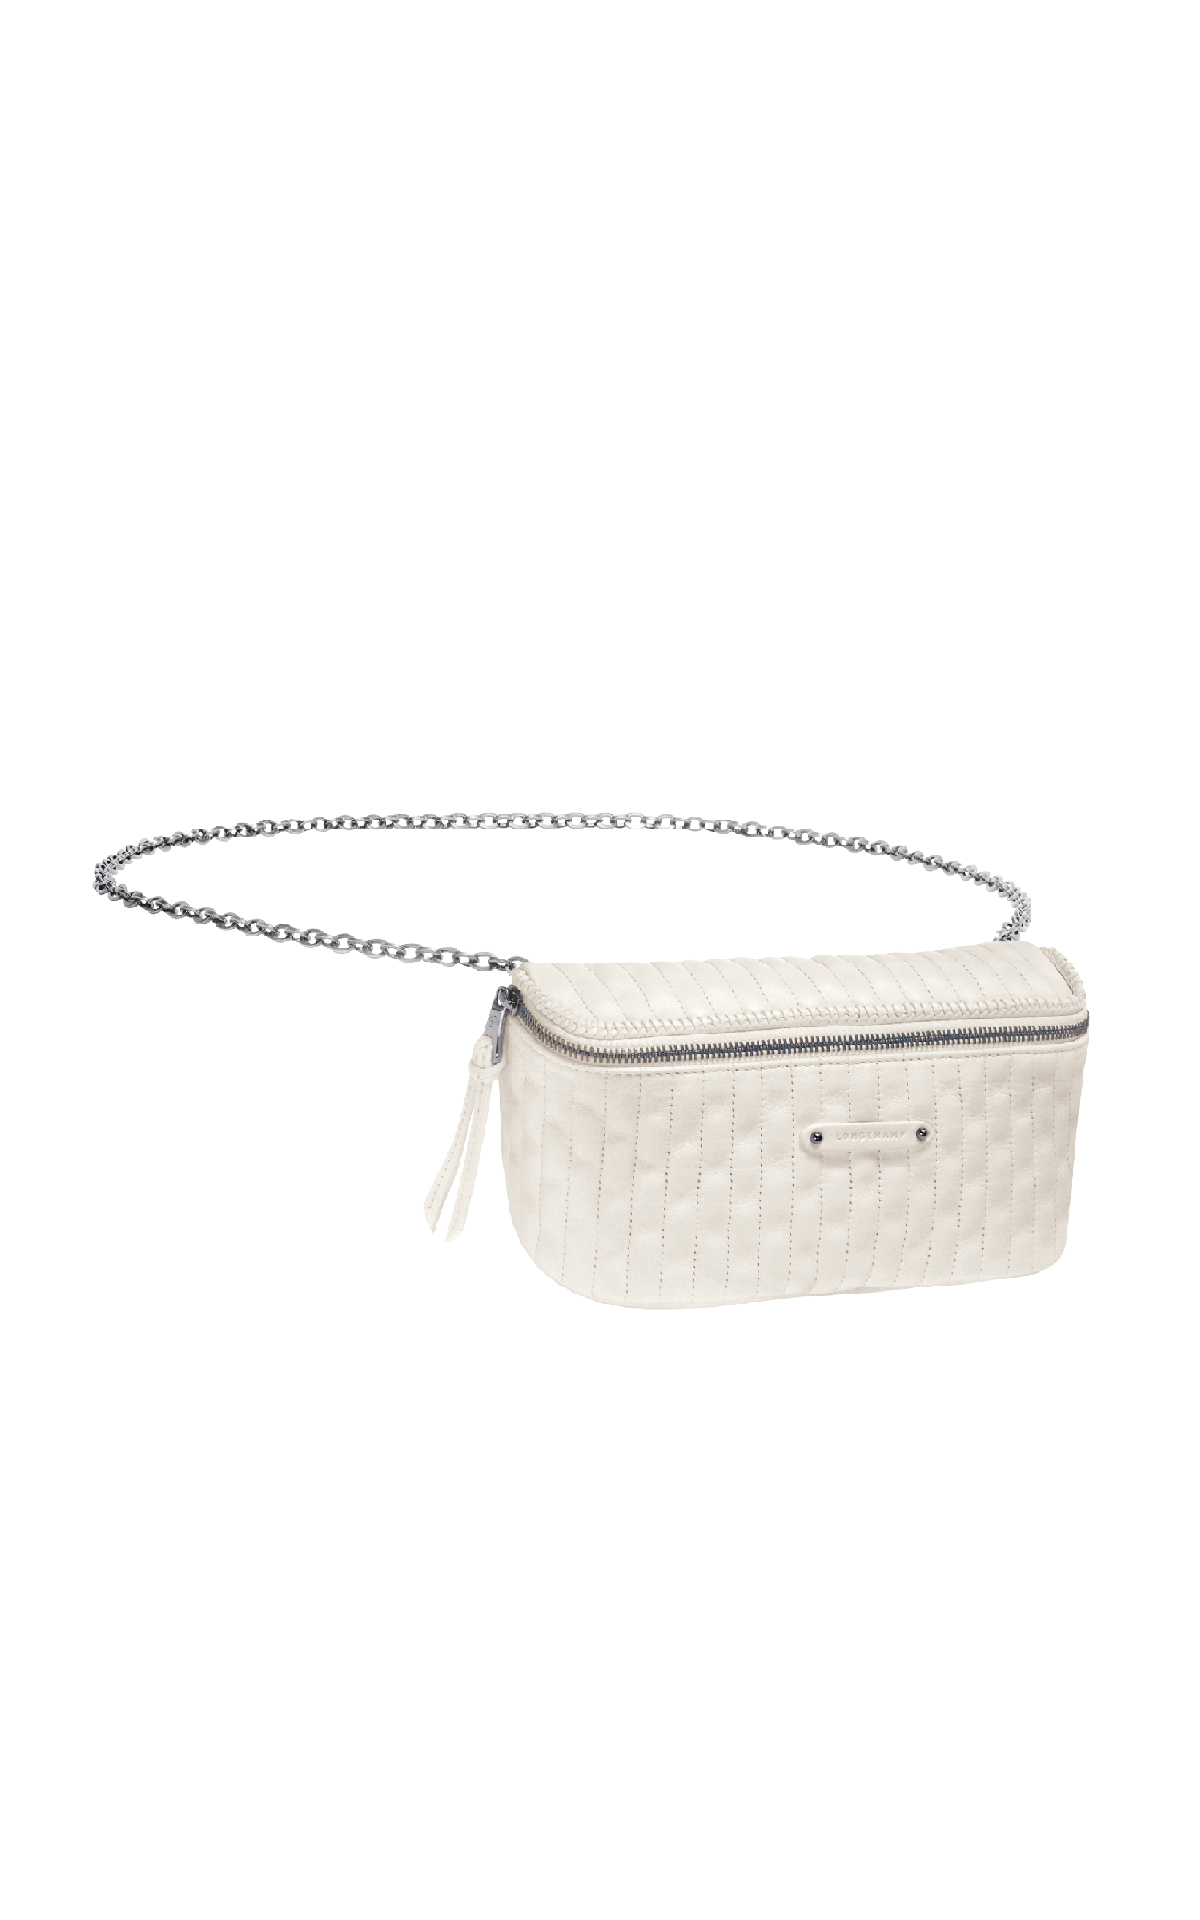 White leather bum bag Longchamp